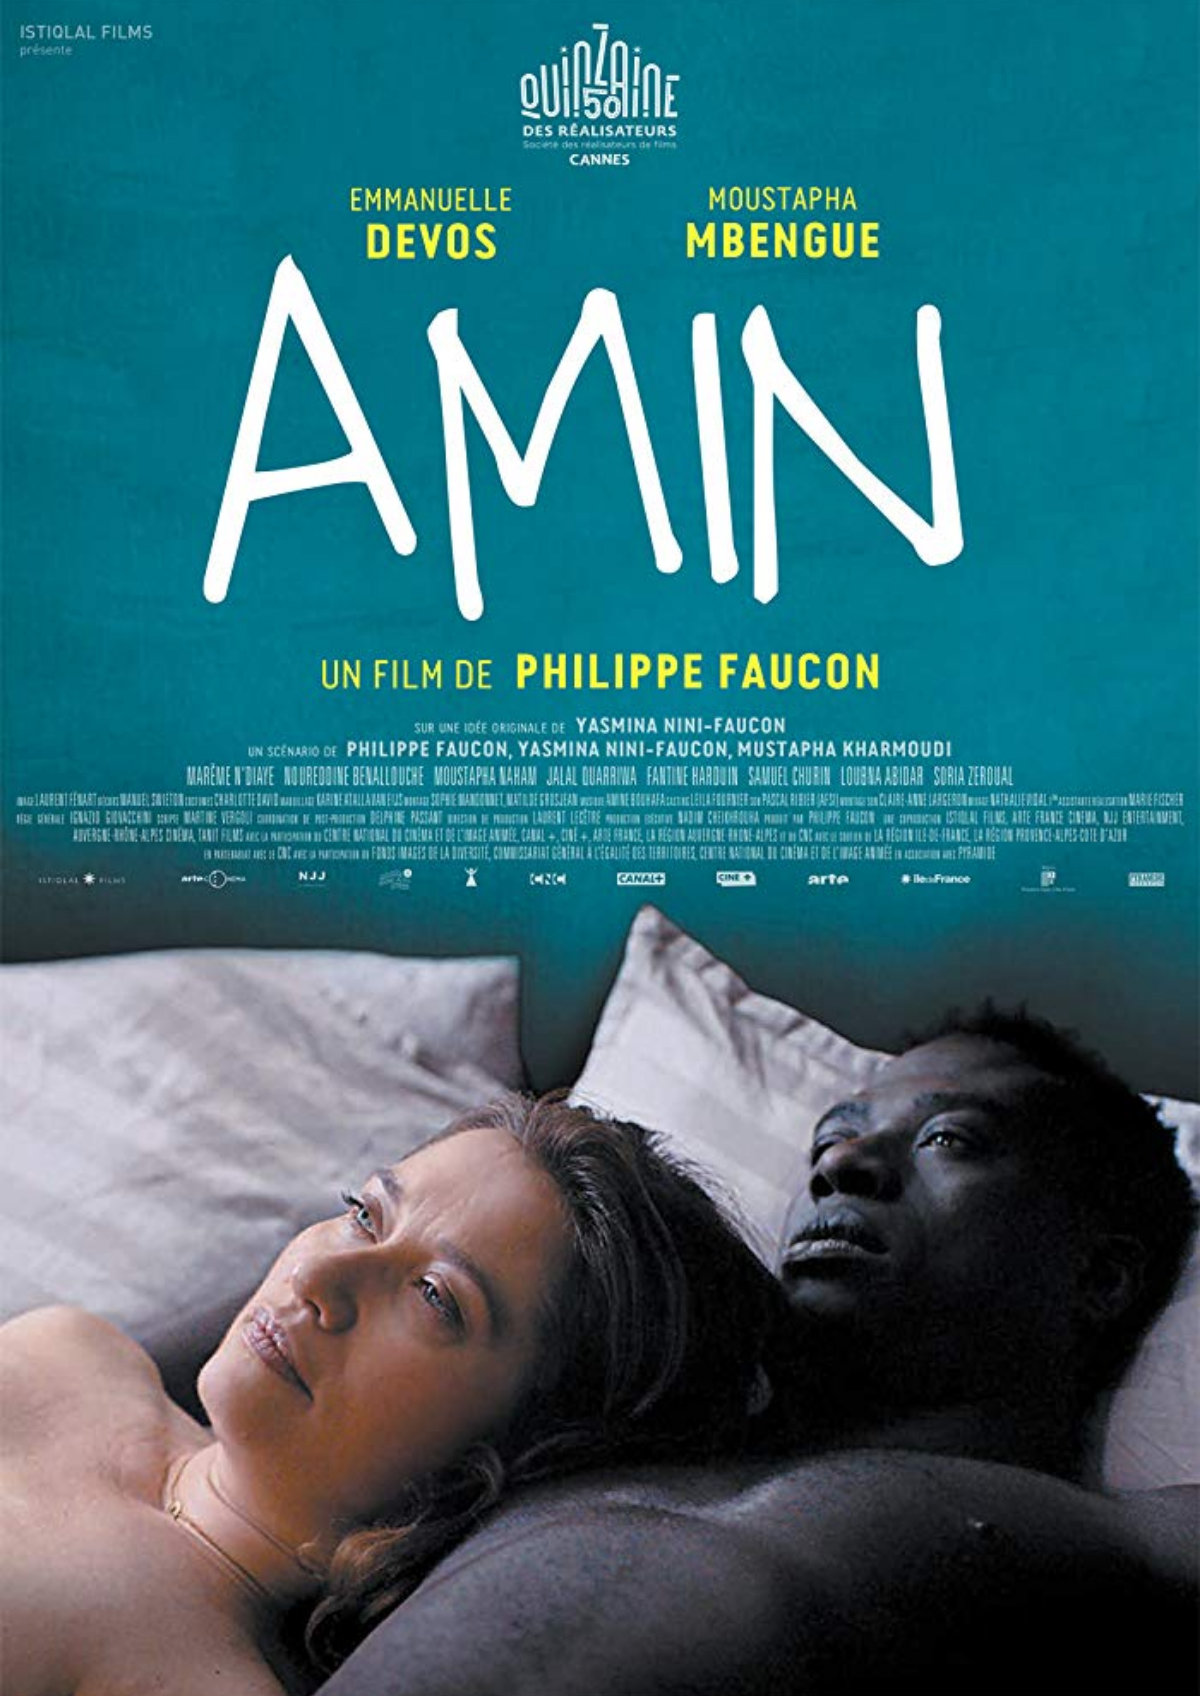 'Amin' movie poster